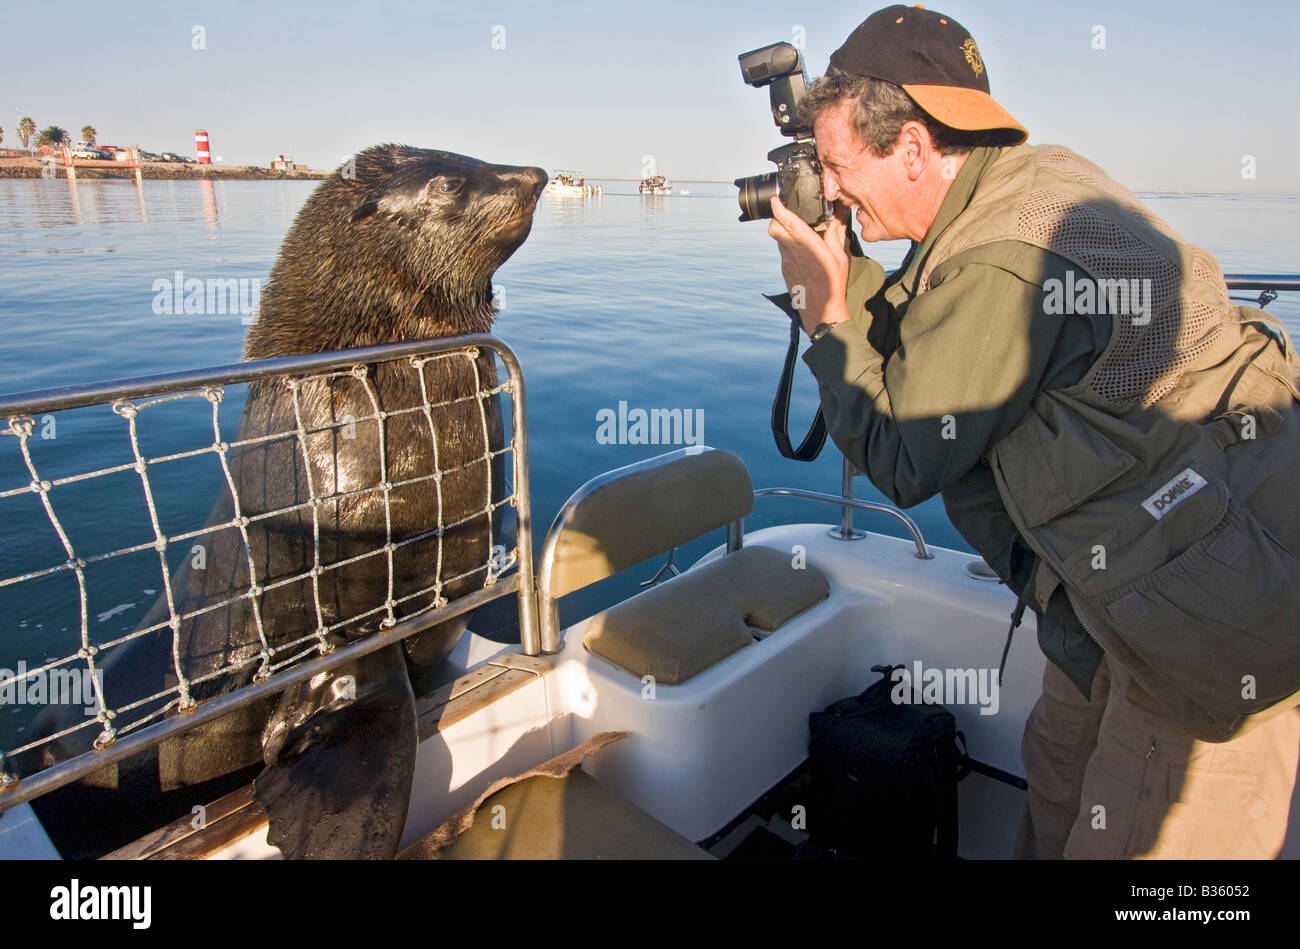 Visiting man photographs Robbie the Cape fur seal who comes to greet tour boats in Walvis Bay in Namibia Africa - Stock Image